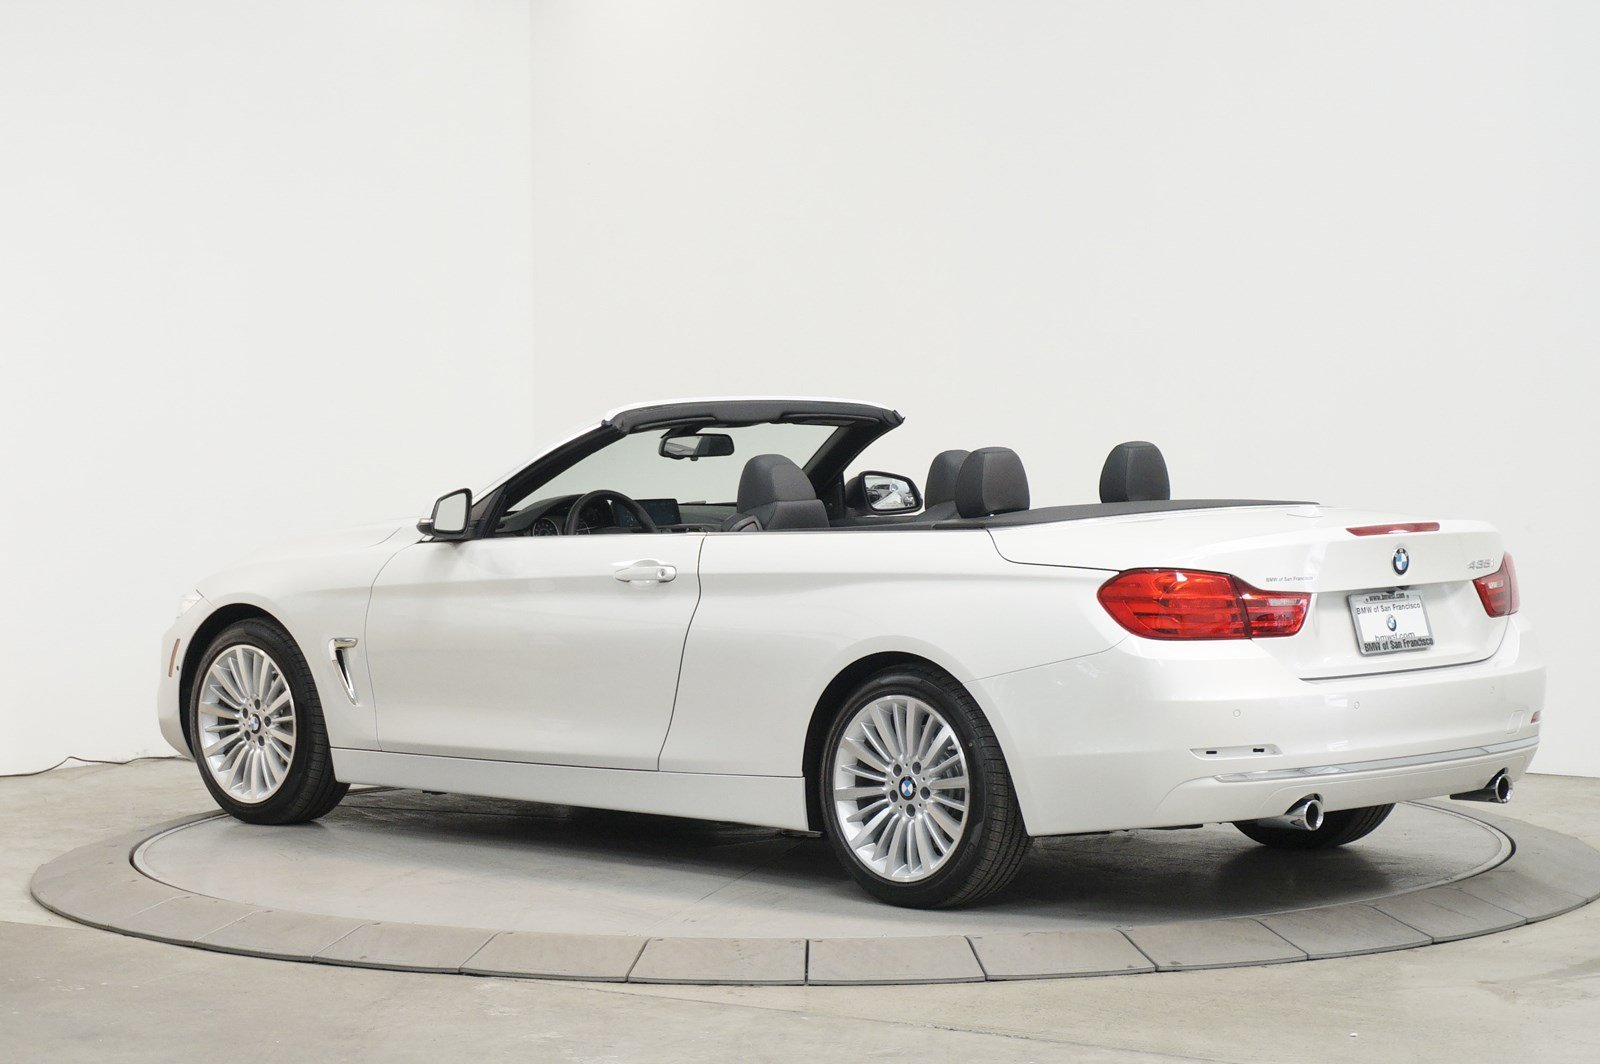 Certified PreOwned BMW Series I Convertible In San - 4 door convertible bmw